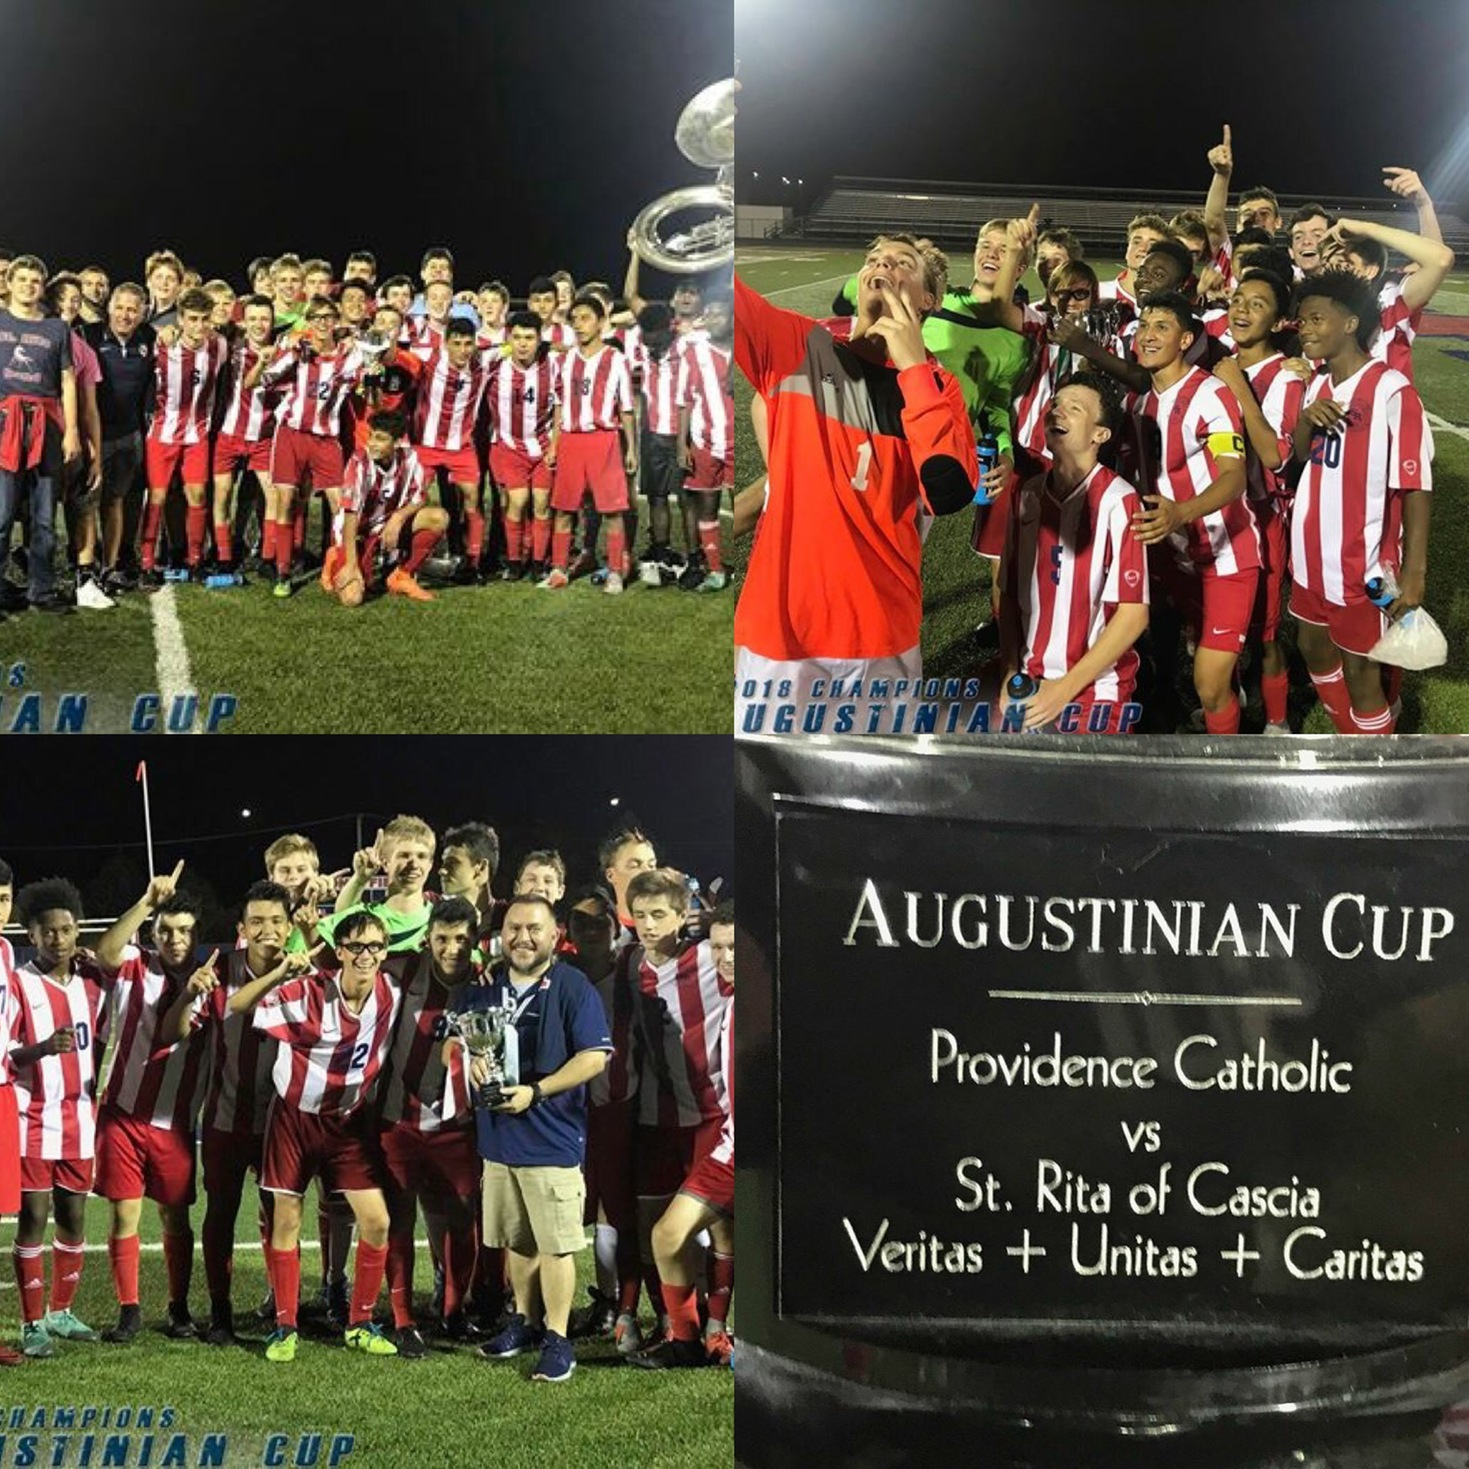 Congrats to the St. Rita Kicking Mustangs winning the Augustinian Cup in a thriller!